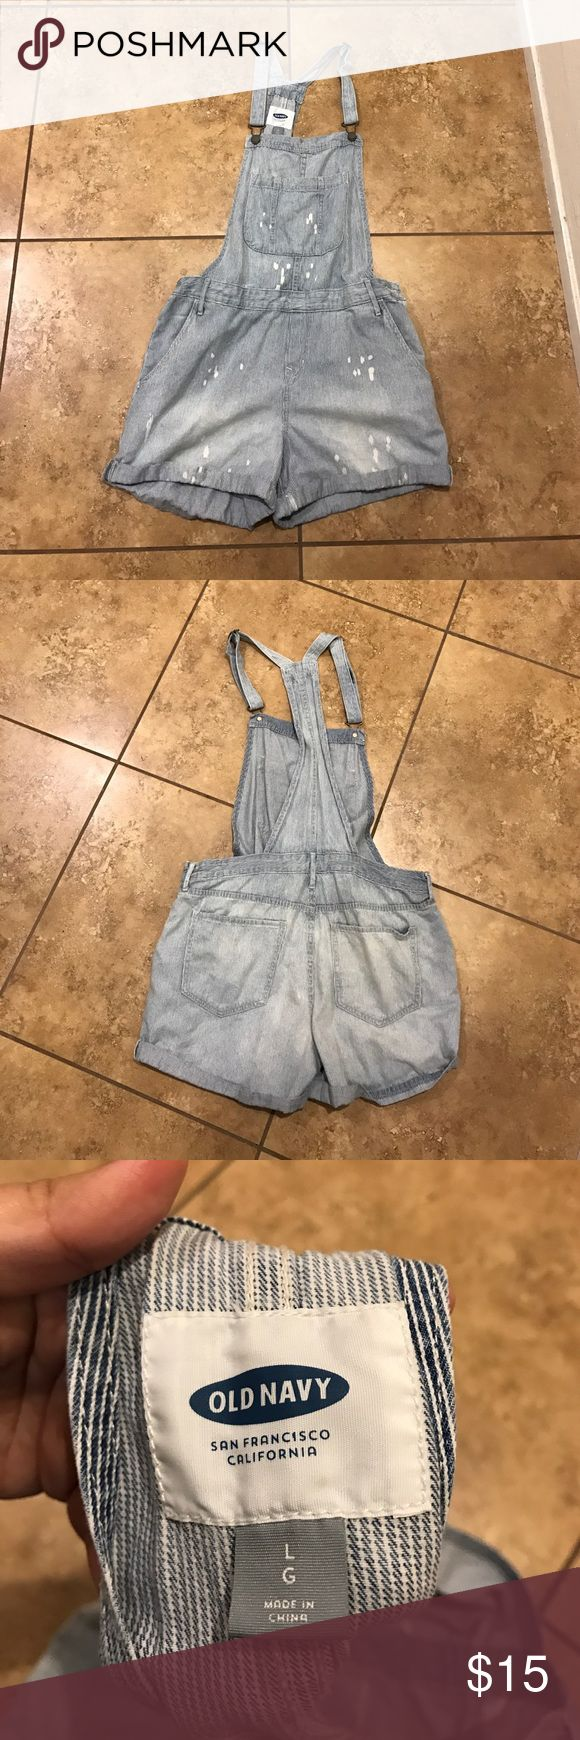 Old navy stripe overalls Cute Old Navy overalls. Only worn once. Very comfy. Old Navy Pants